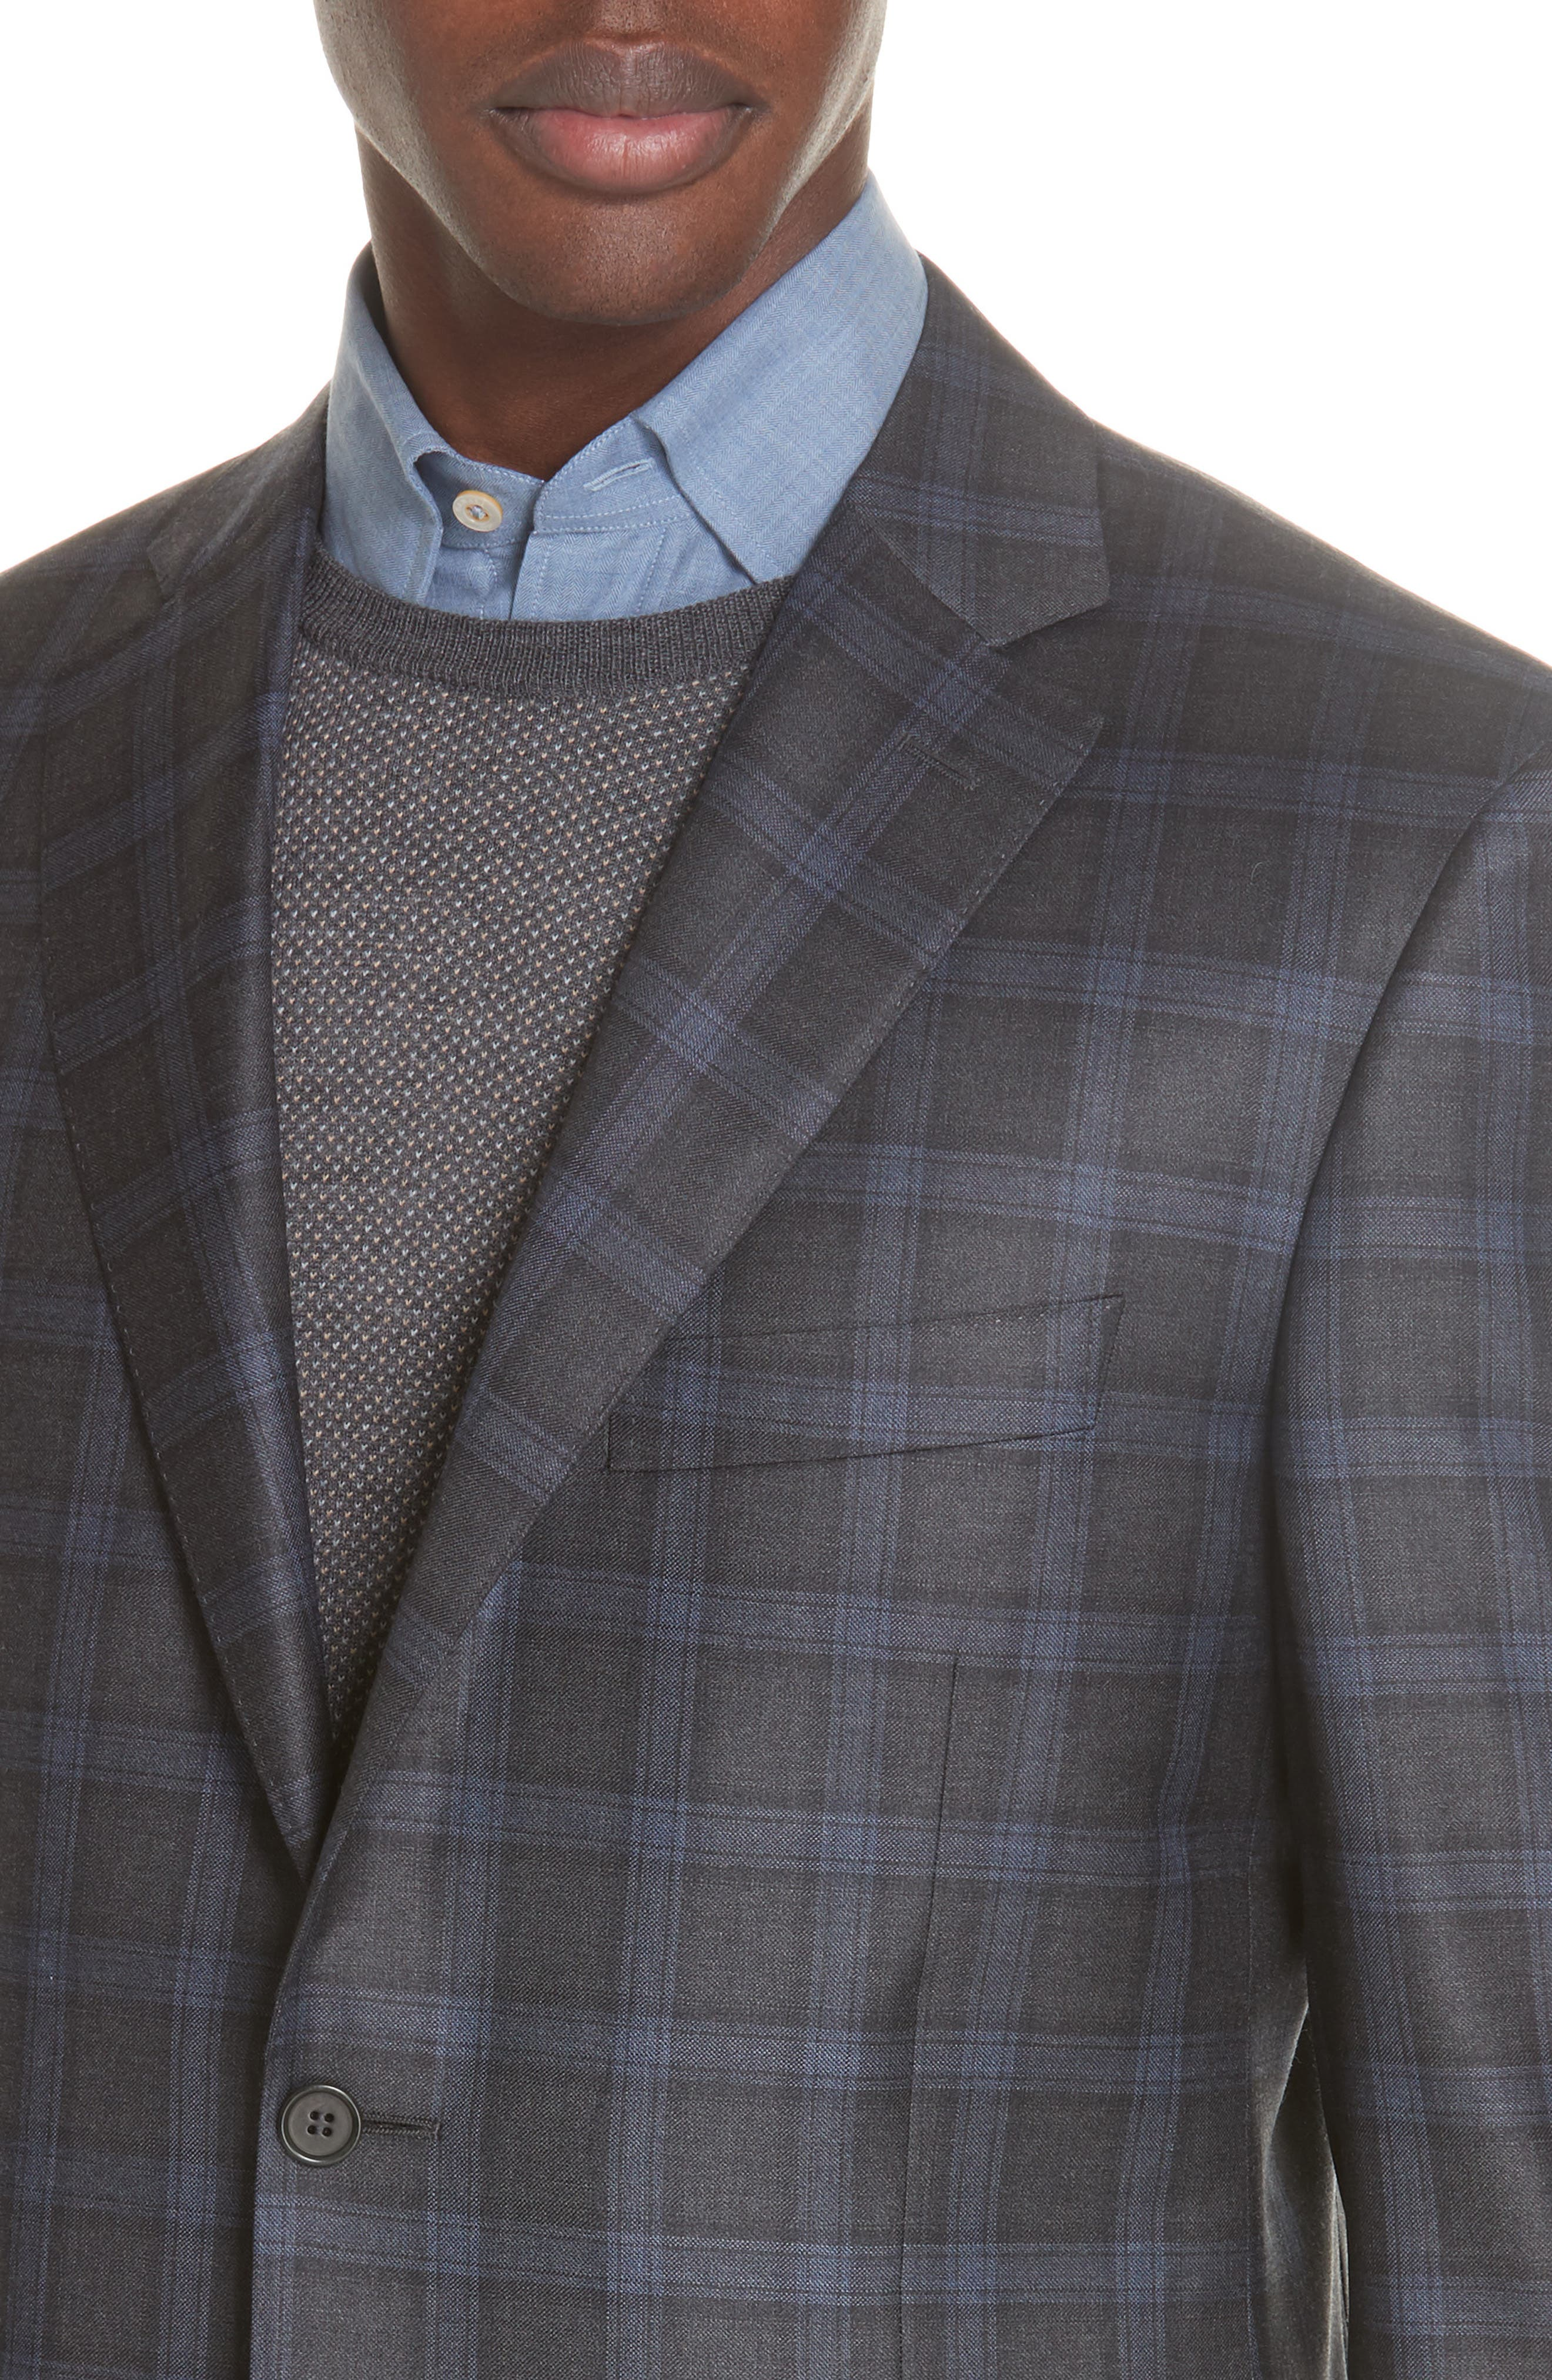 Classic Fit Plaid Wool Sport Coat,                             Alternate thumbnail 4, color,                             020